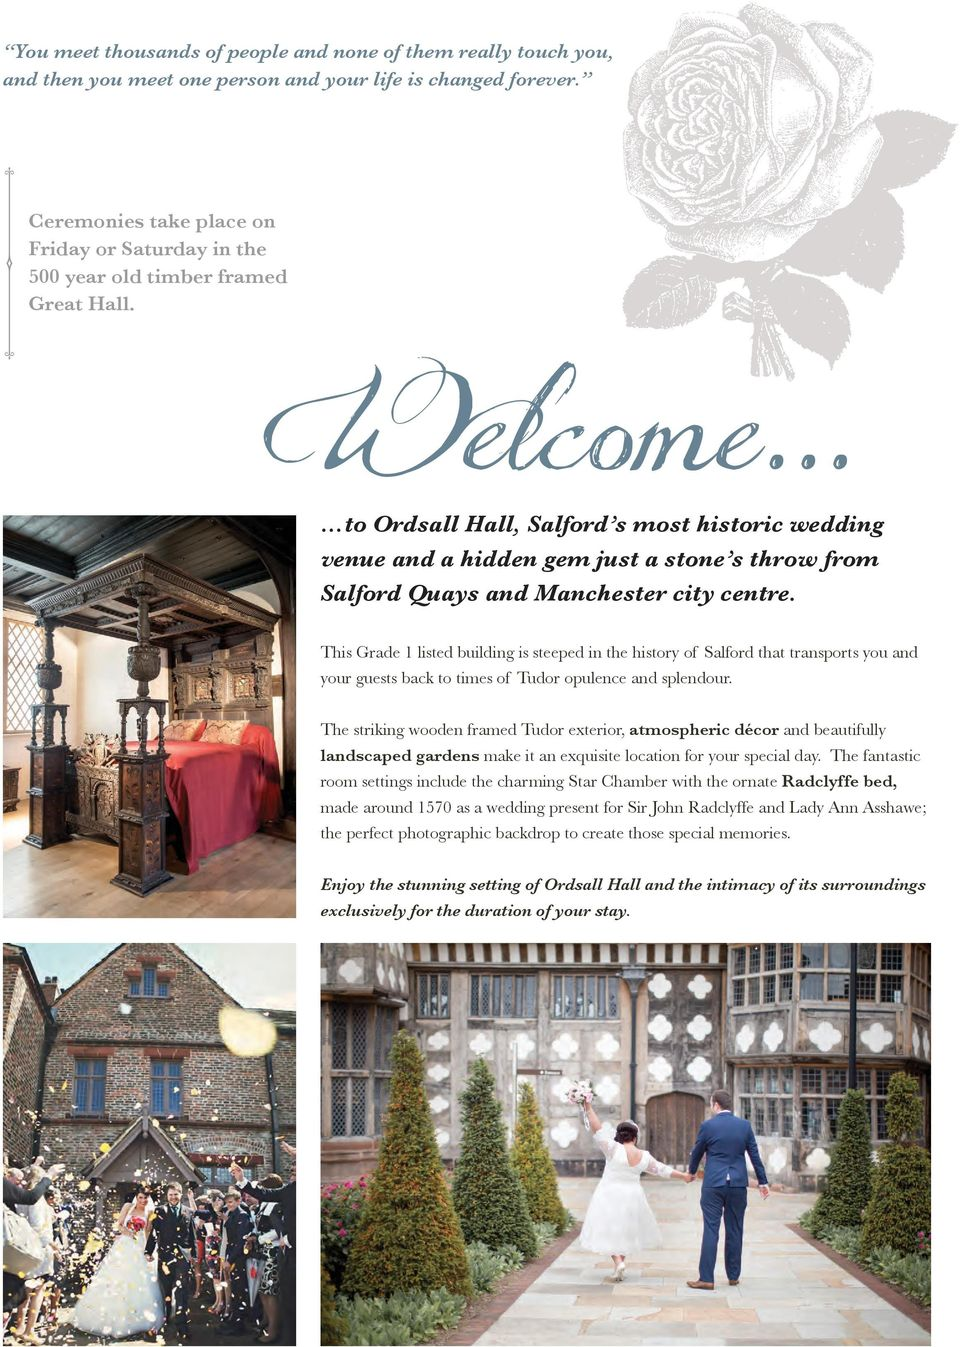 .. to Ordsall Hall, Salford s most historic wedding venue and a hidden gem just a stone s throw from Salford Quays and Manchester city centre.